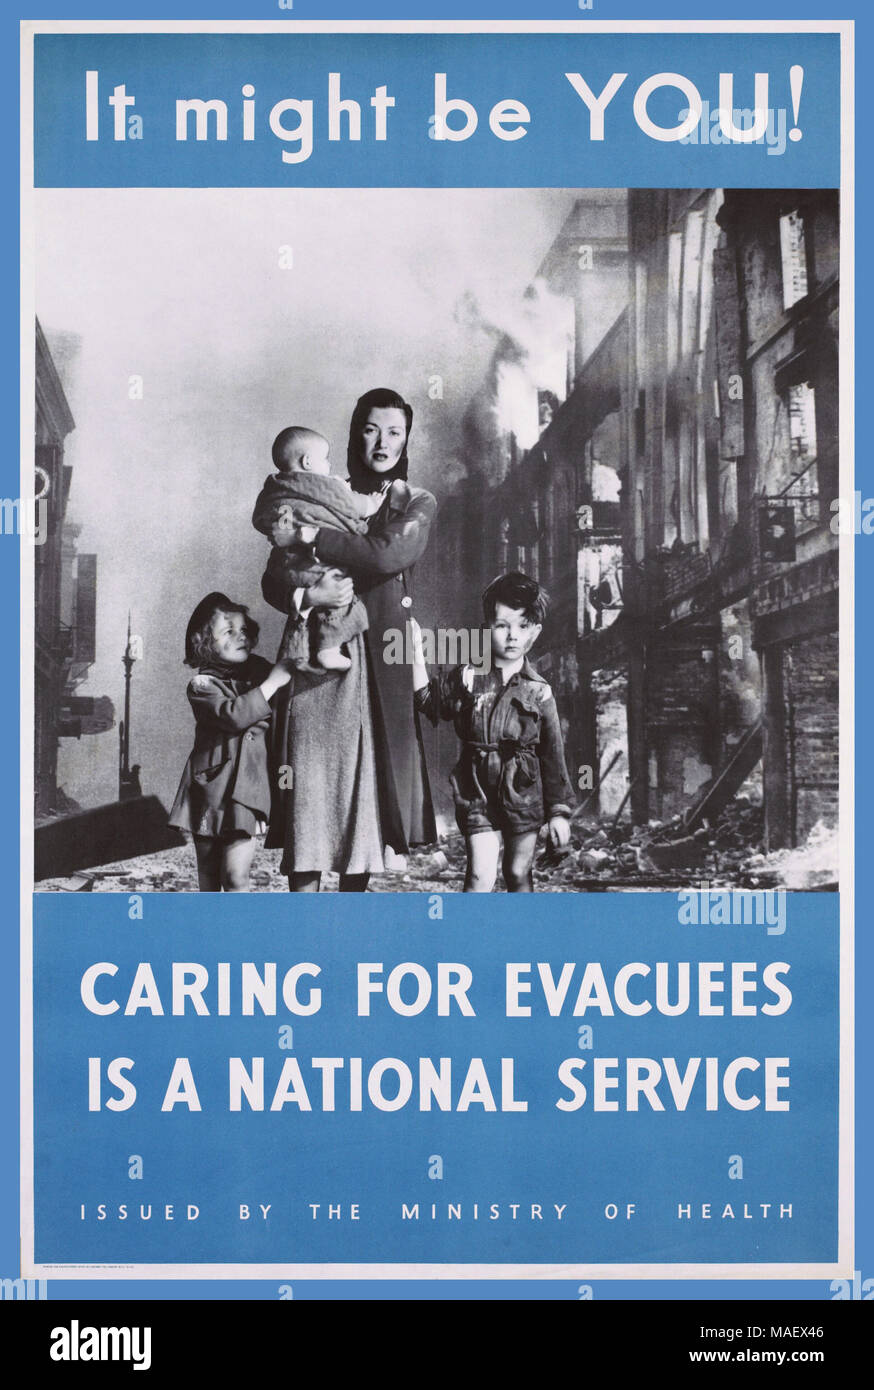 1940's Information Propaganda Poster UK photograph of a woman holding a baby and accompanied by two small children. They walk down a bombed street with buildings ablaze. Their torn and dirty clothing suggests that they have been caught in an air raid.' It might be YOU! CARING FOR EVACUEES IS A NATIONAL SERVICE'   ISSUED BY THE MINISTRY OF HEALTH 1940's Second World War WW2 Propaganda Information Poster - part of a series urging Britons to take evacuation seriously and send their children out of the city to safety. - Stock Image